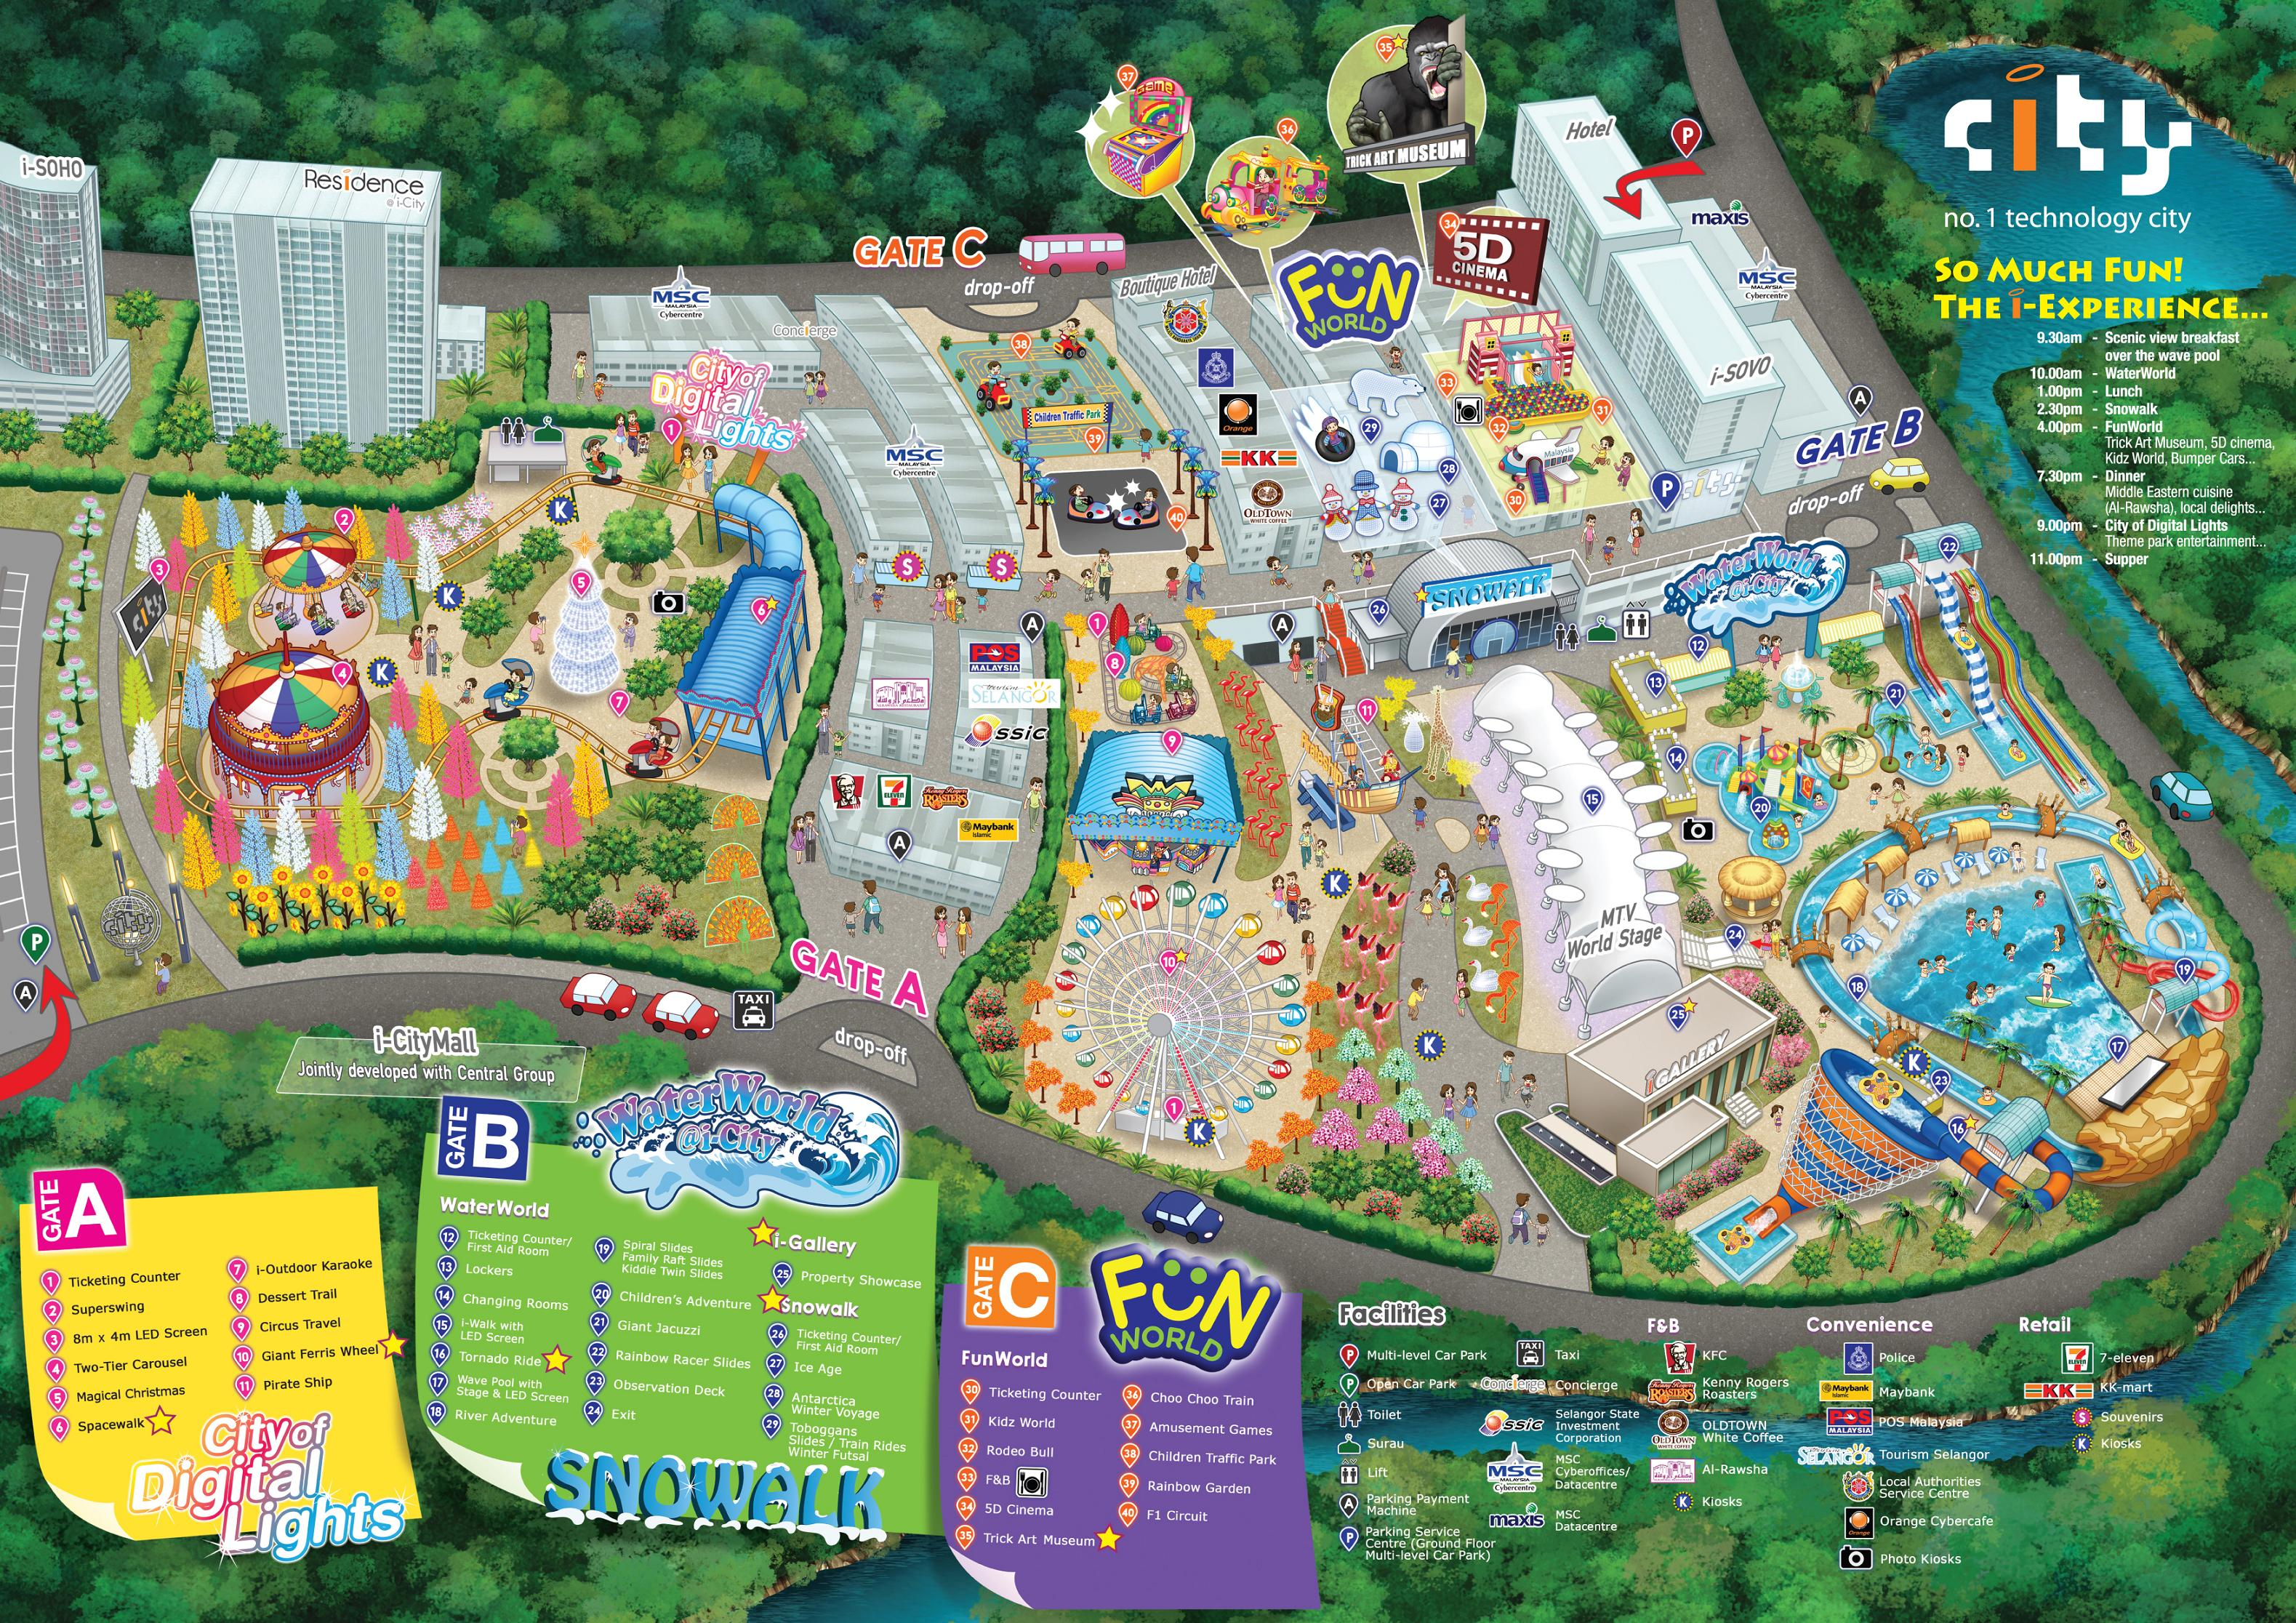 iCity_map_inside